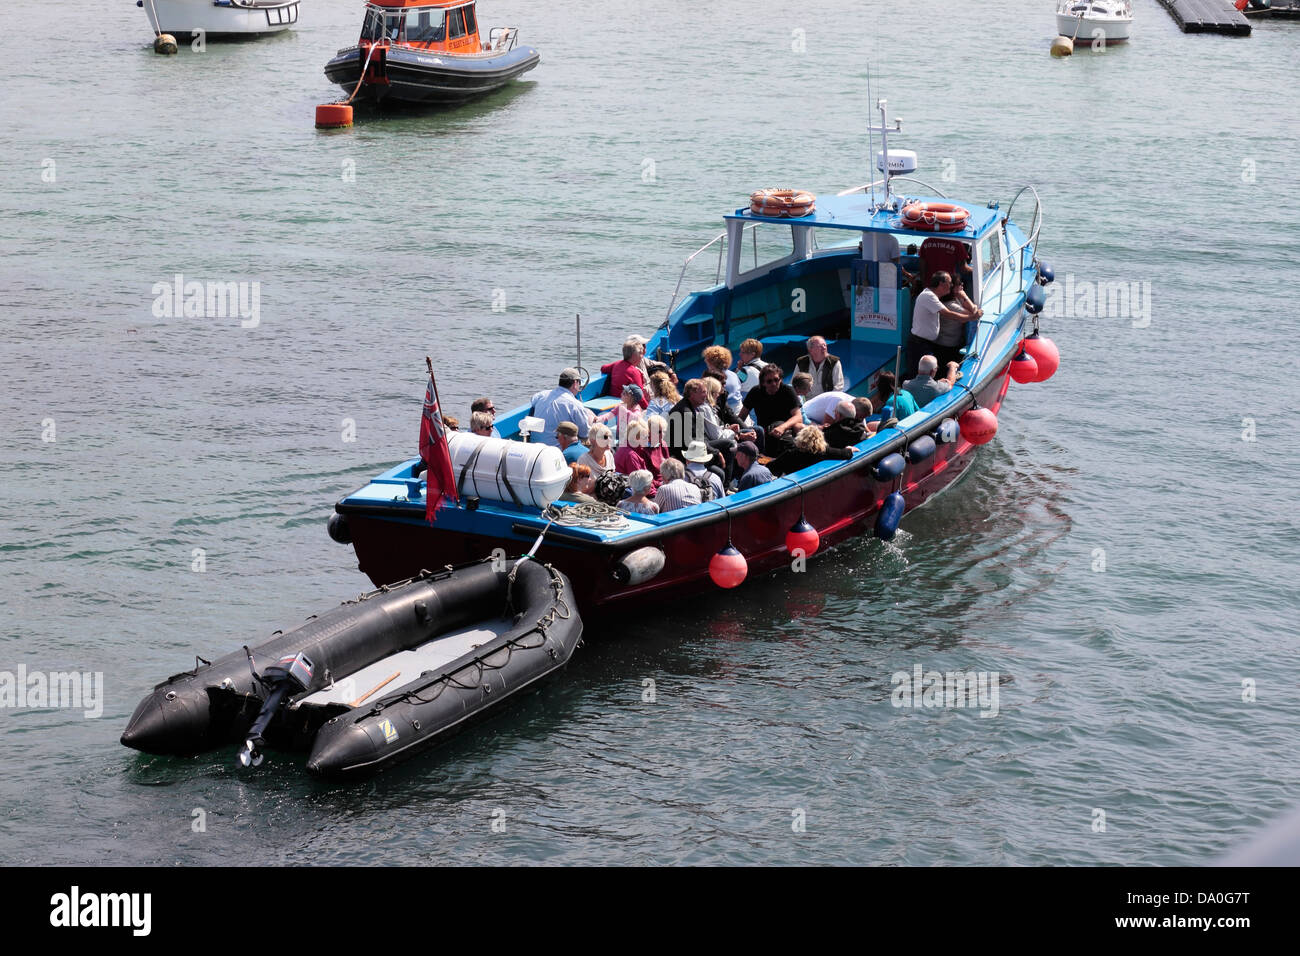 Day Trip Boat returning to St Mary's Harbour - Stock Image